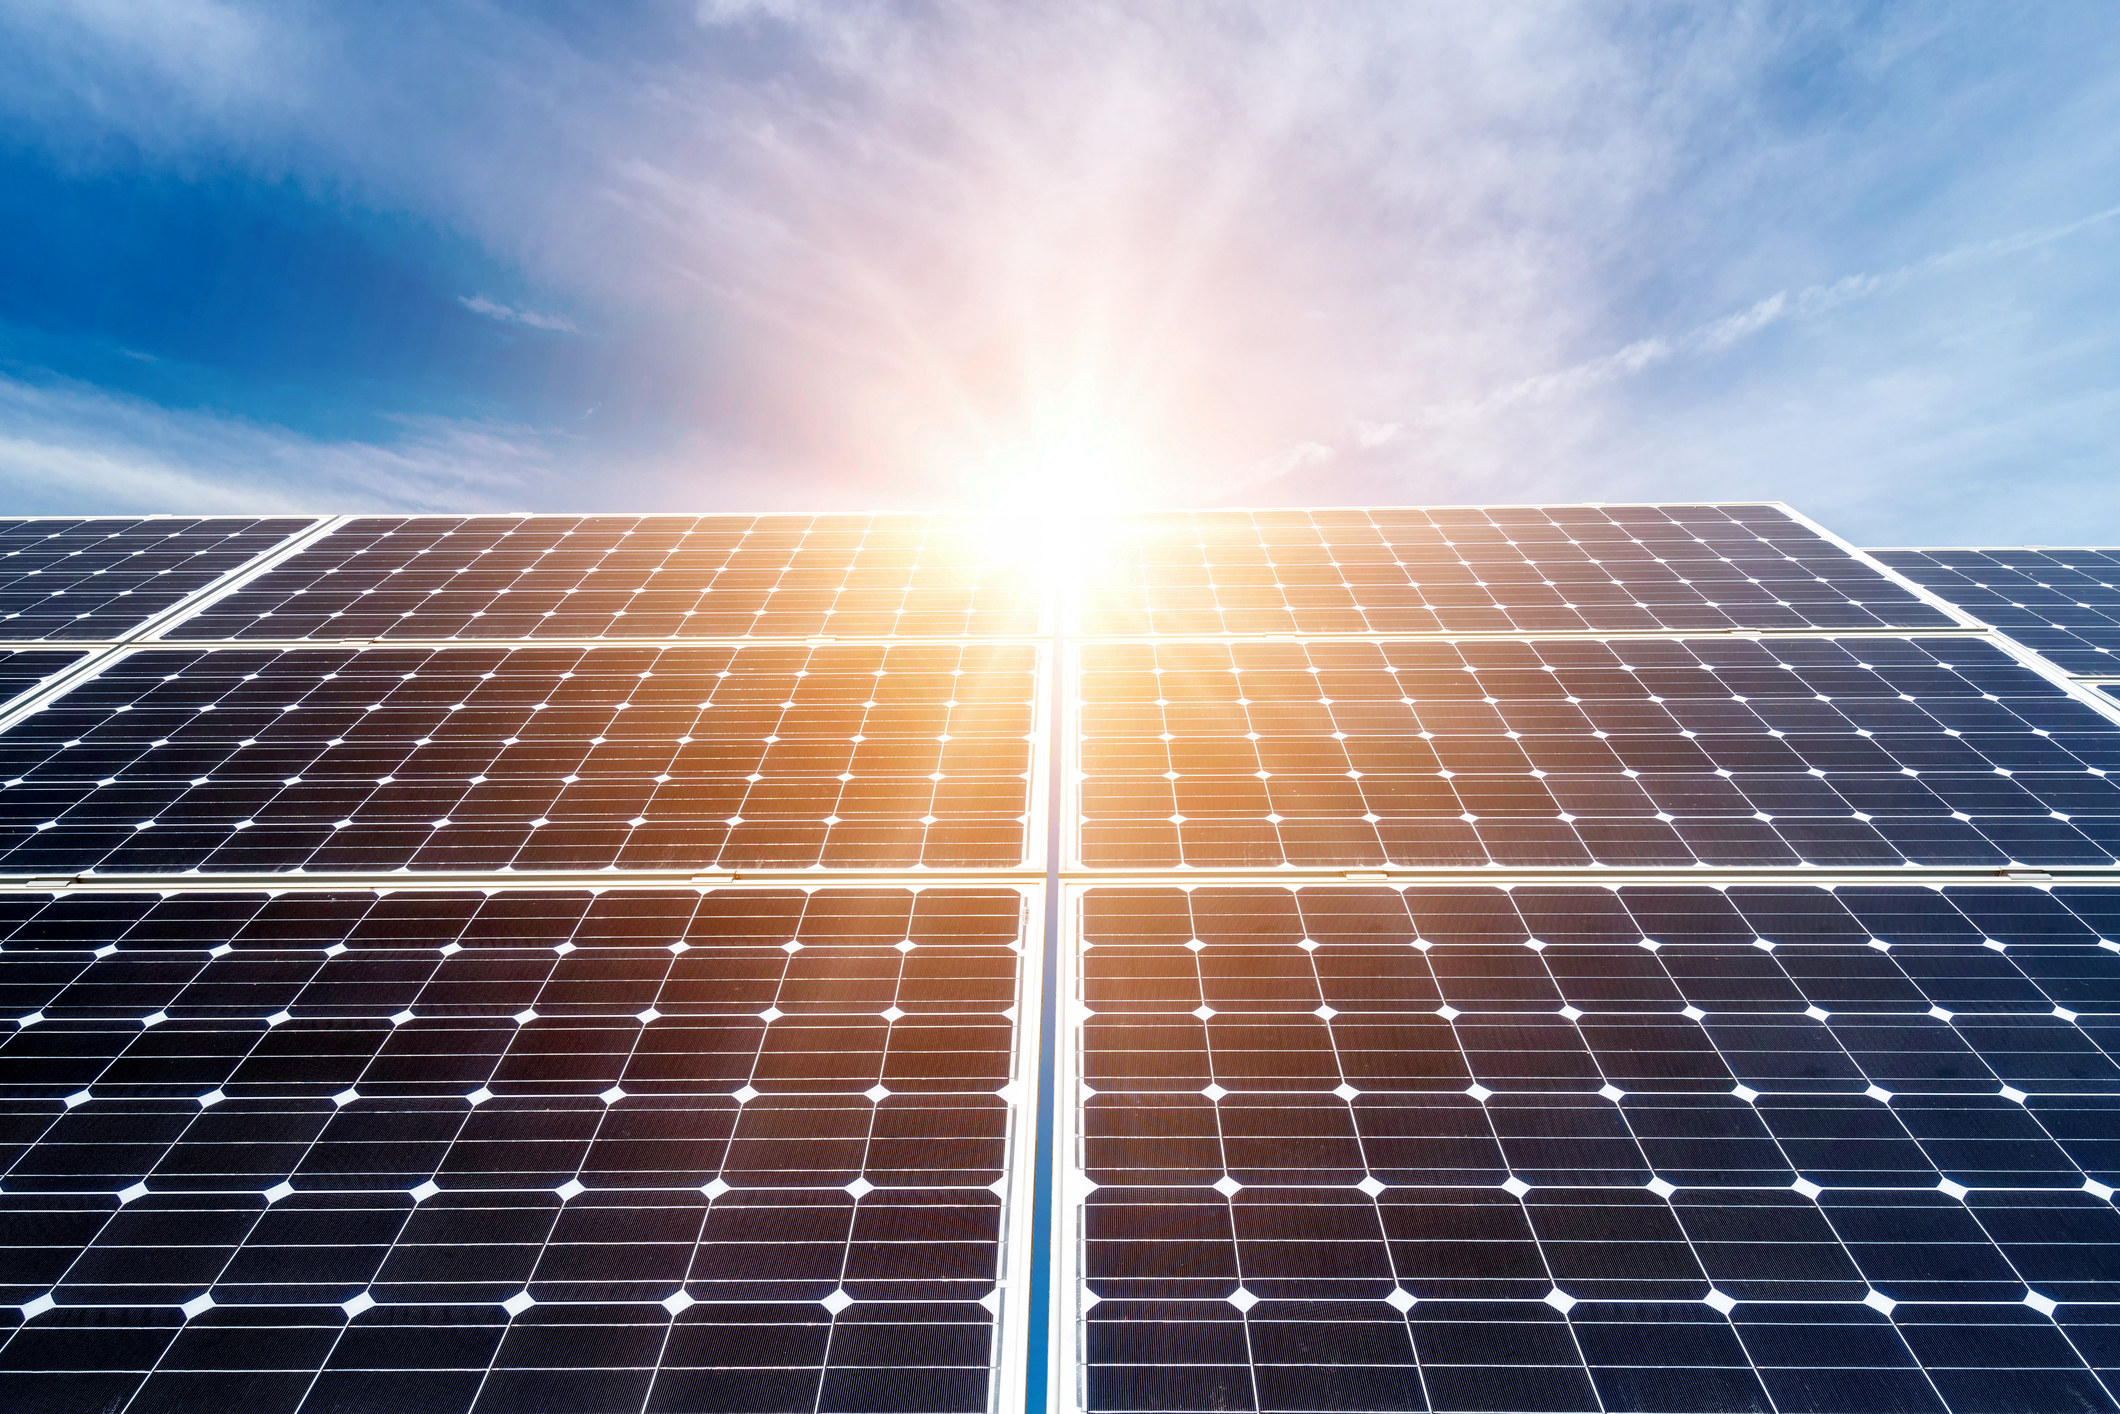 How to build solar panels for power? – The truth of battery bank